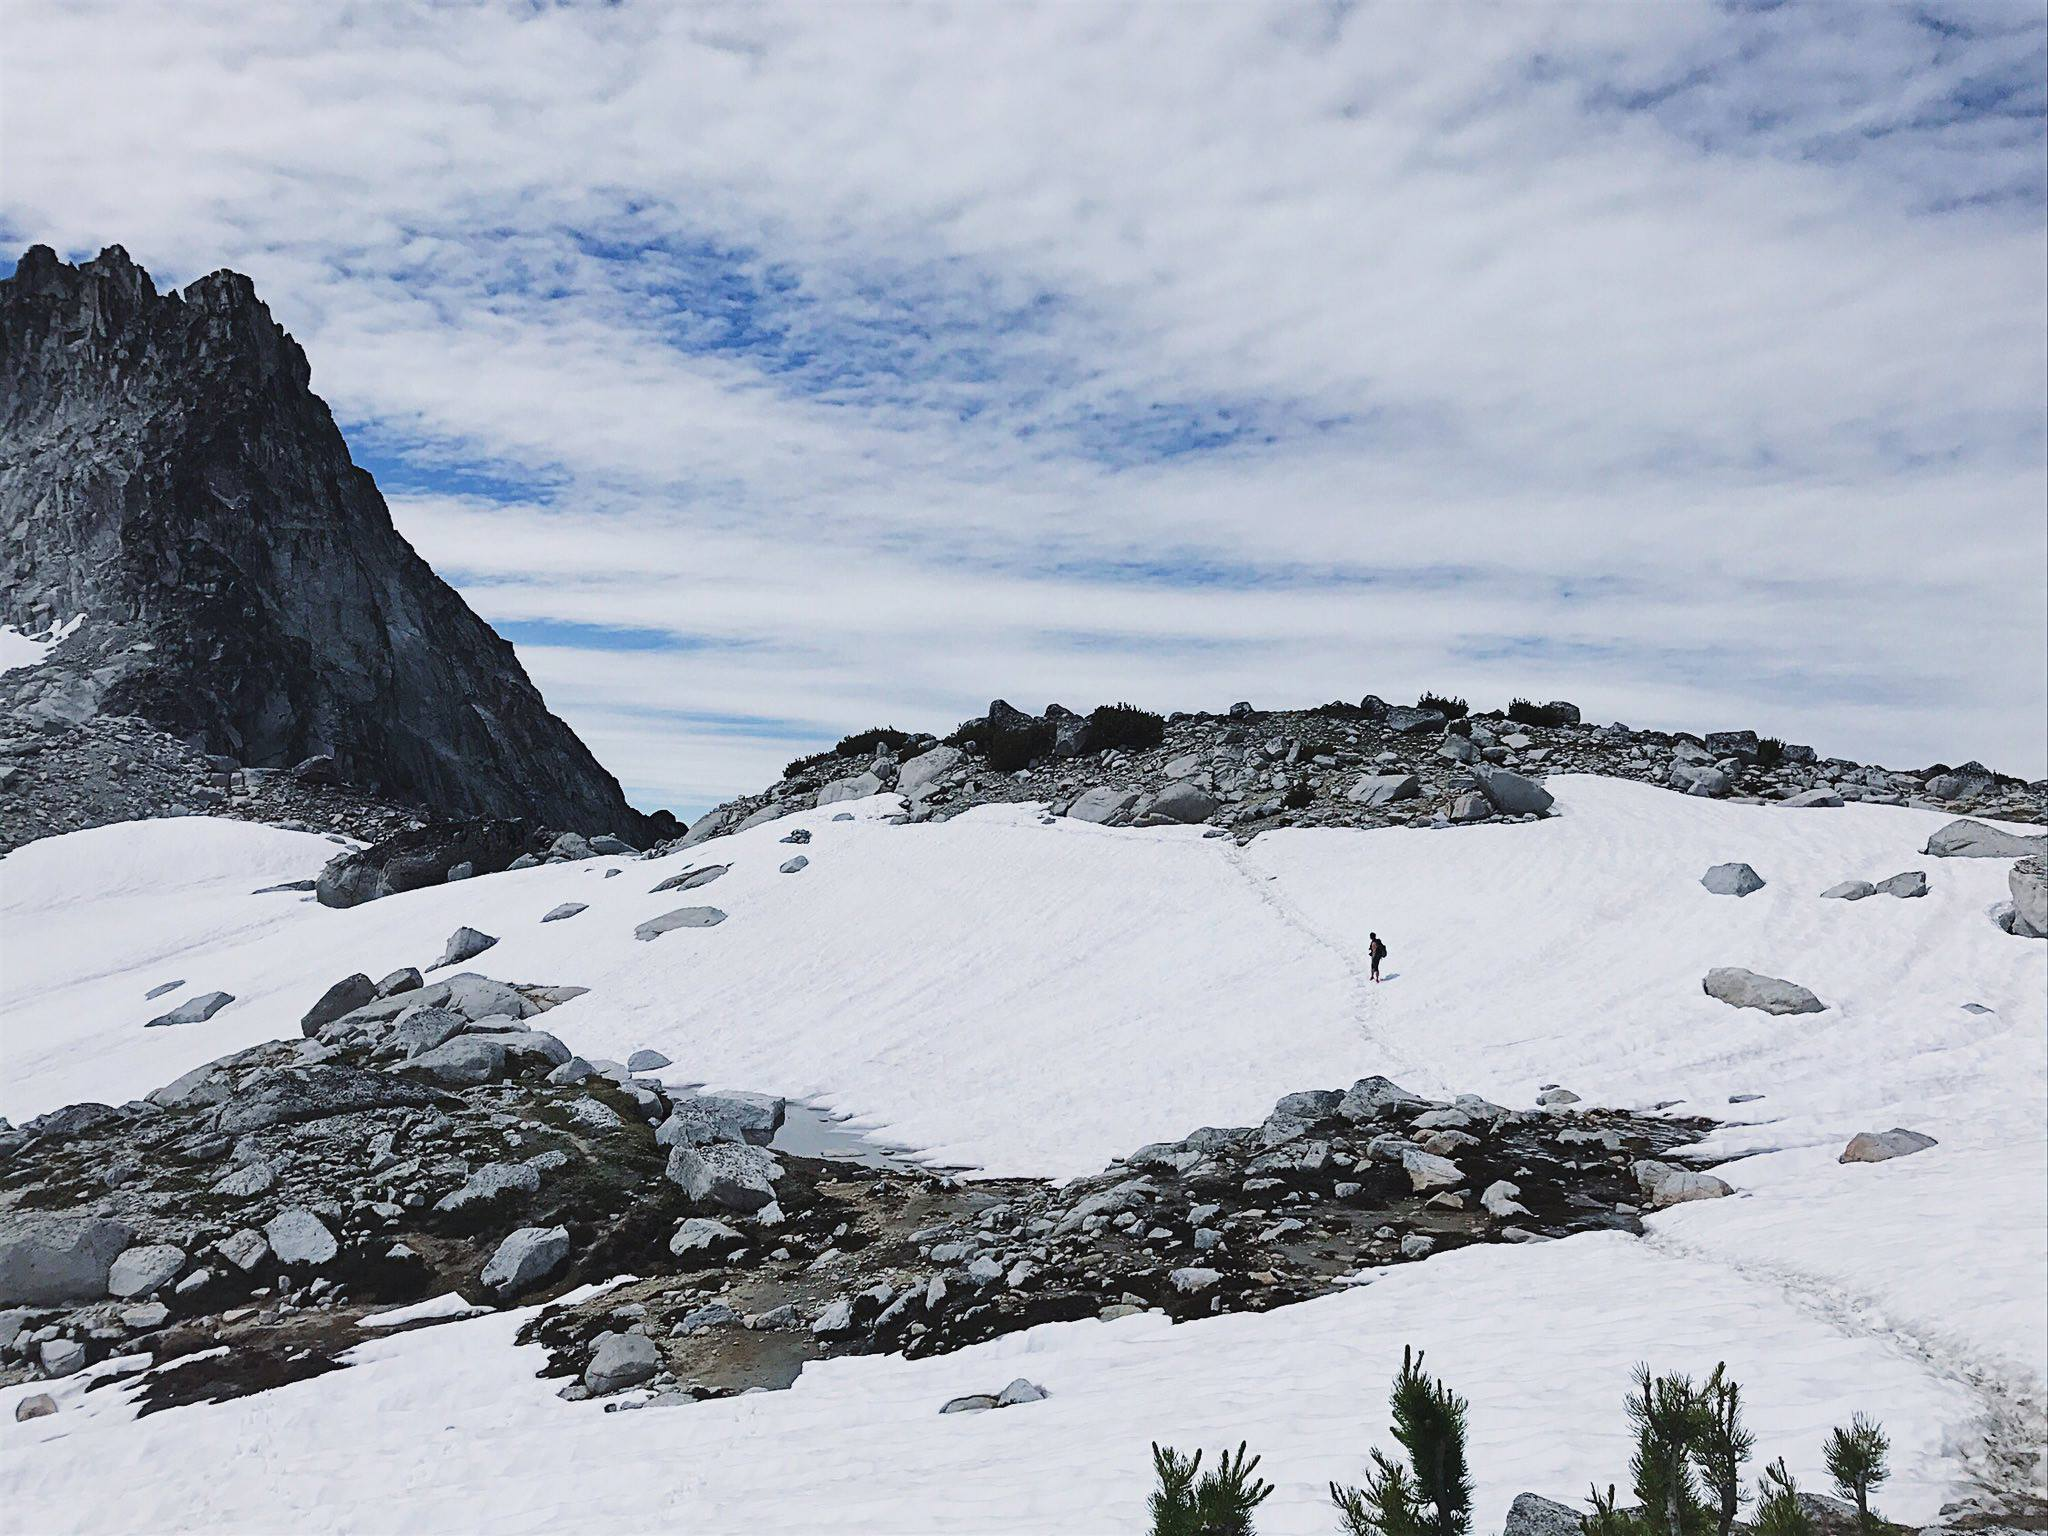 Hiking The Enchantments in one day and somehow not dying